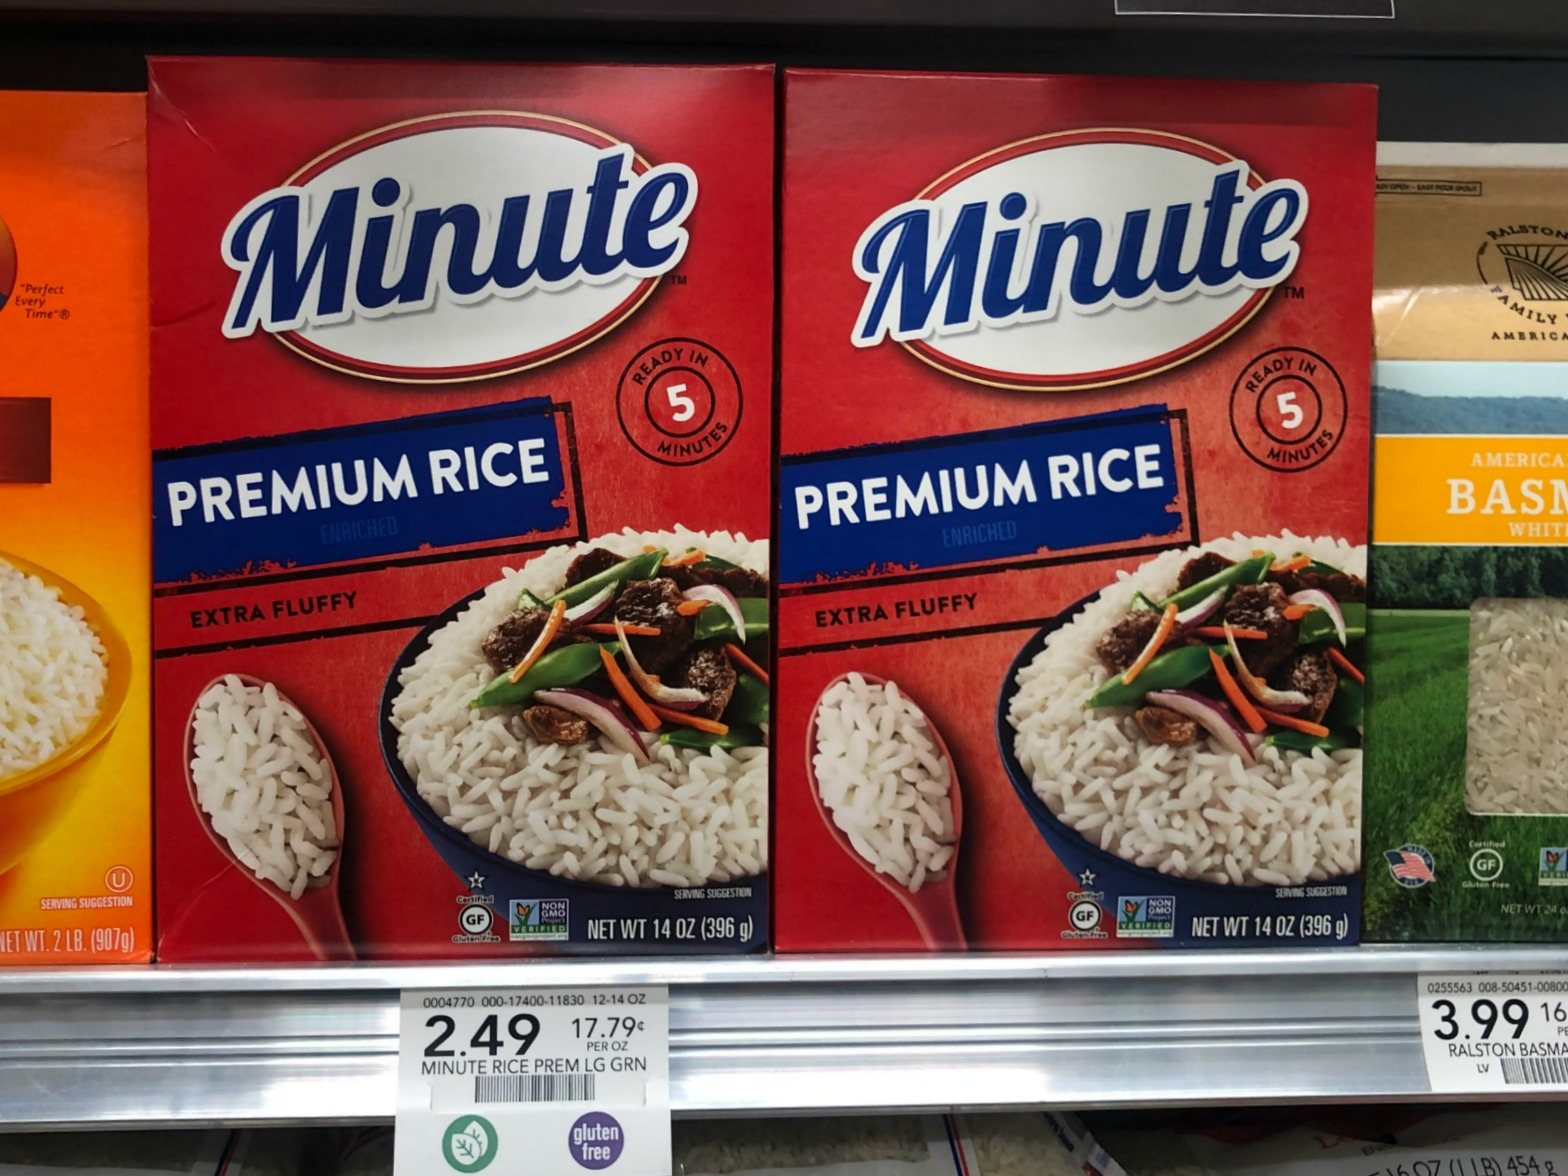 Quick & Easy Bulgogi For Your Busy Weeknight - Save On Minute Instant Rice Now At Publix on I Heart Publix 3